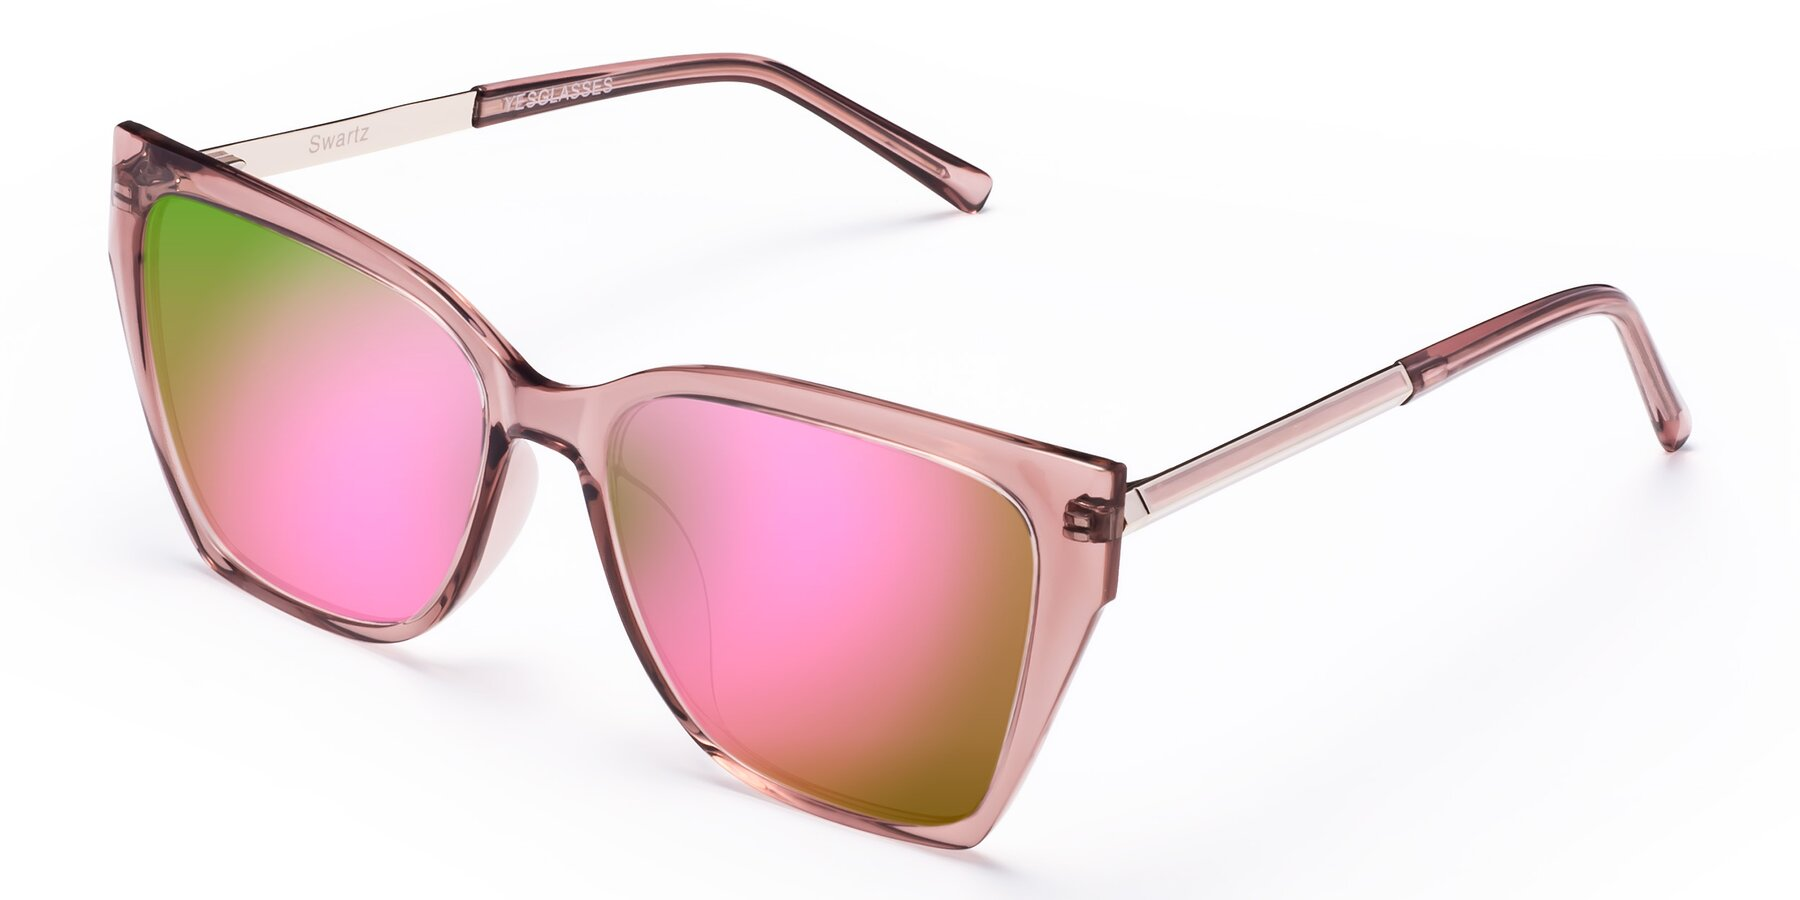 Angle of Swartz in Grape with Pink Mirrored Lenses